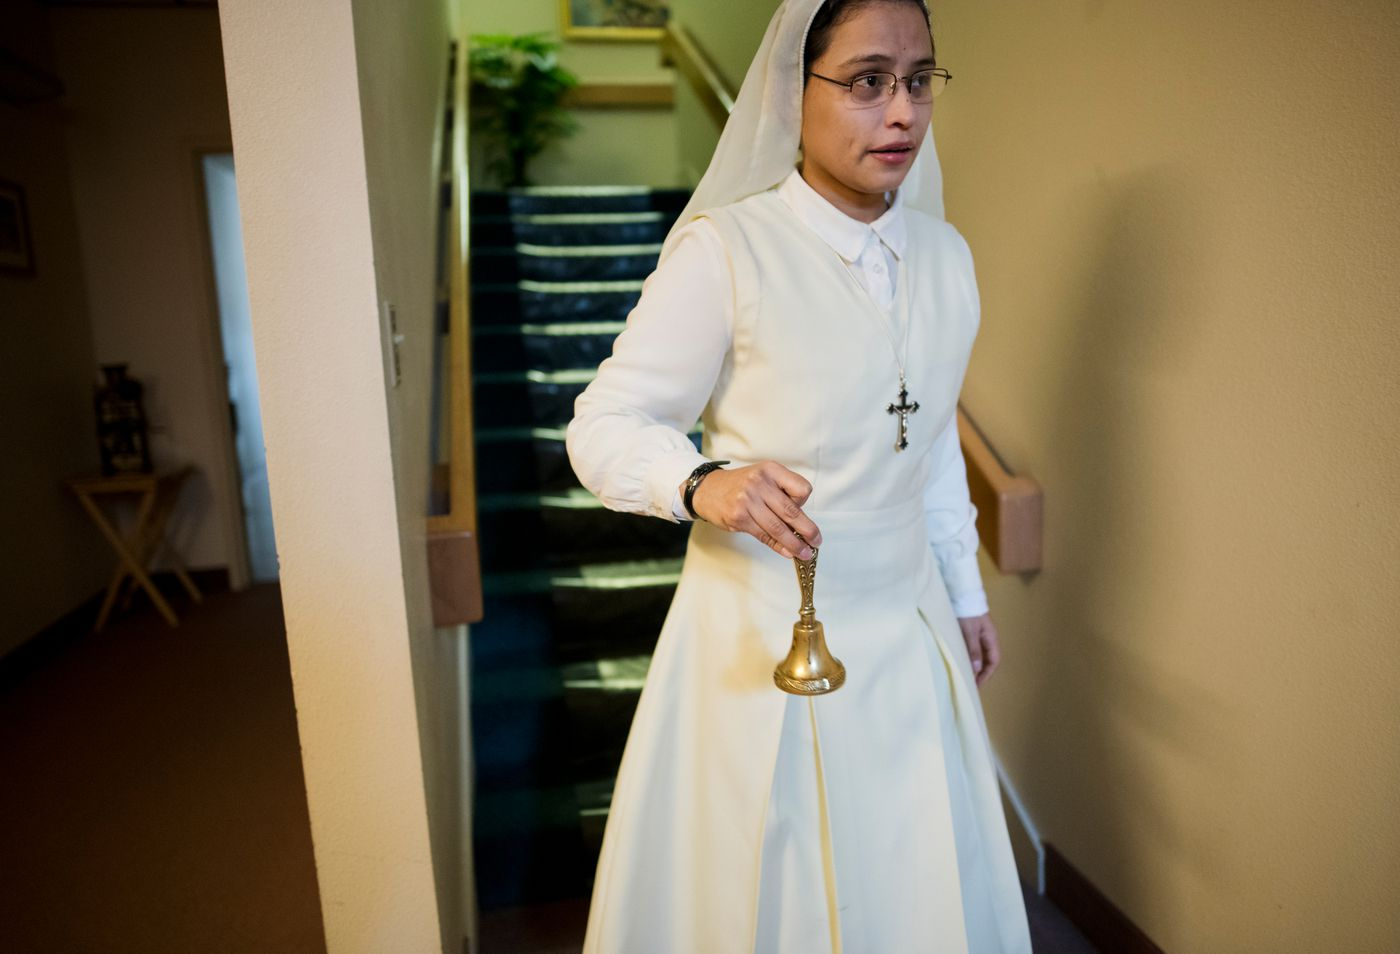 Carmen Sanchez, a postulant or candidate to become a nun, rings a bell to call the Sisters of Adoration to prayers on March 26, 2018. (Marc Lester / ADN)